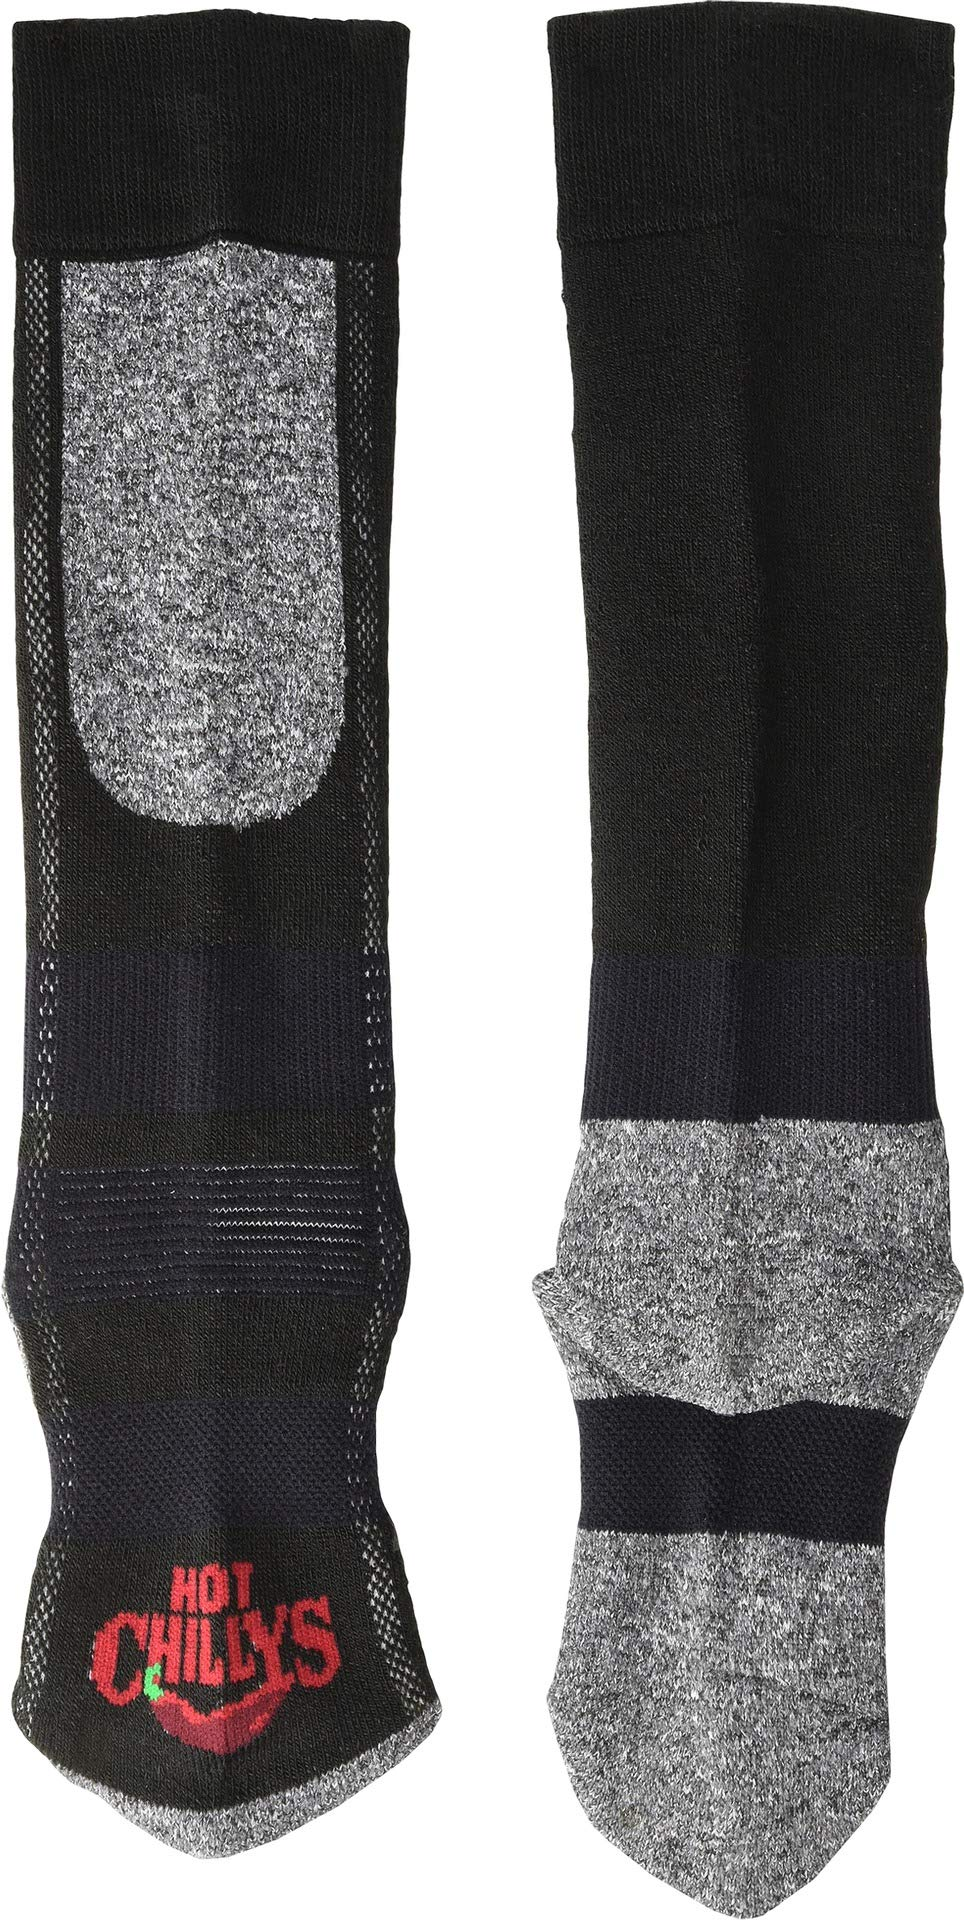 Hot Chillys Youth Assorted Mid Volume Sock (Black/Heather, Small) by Hot Chillys